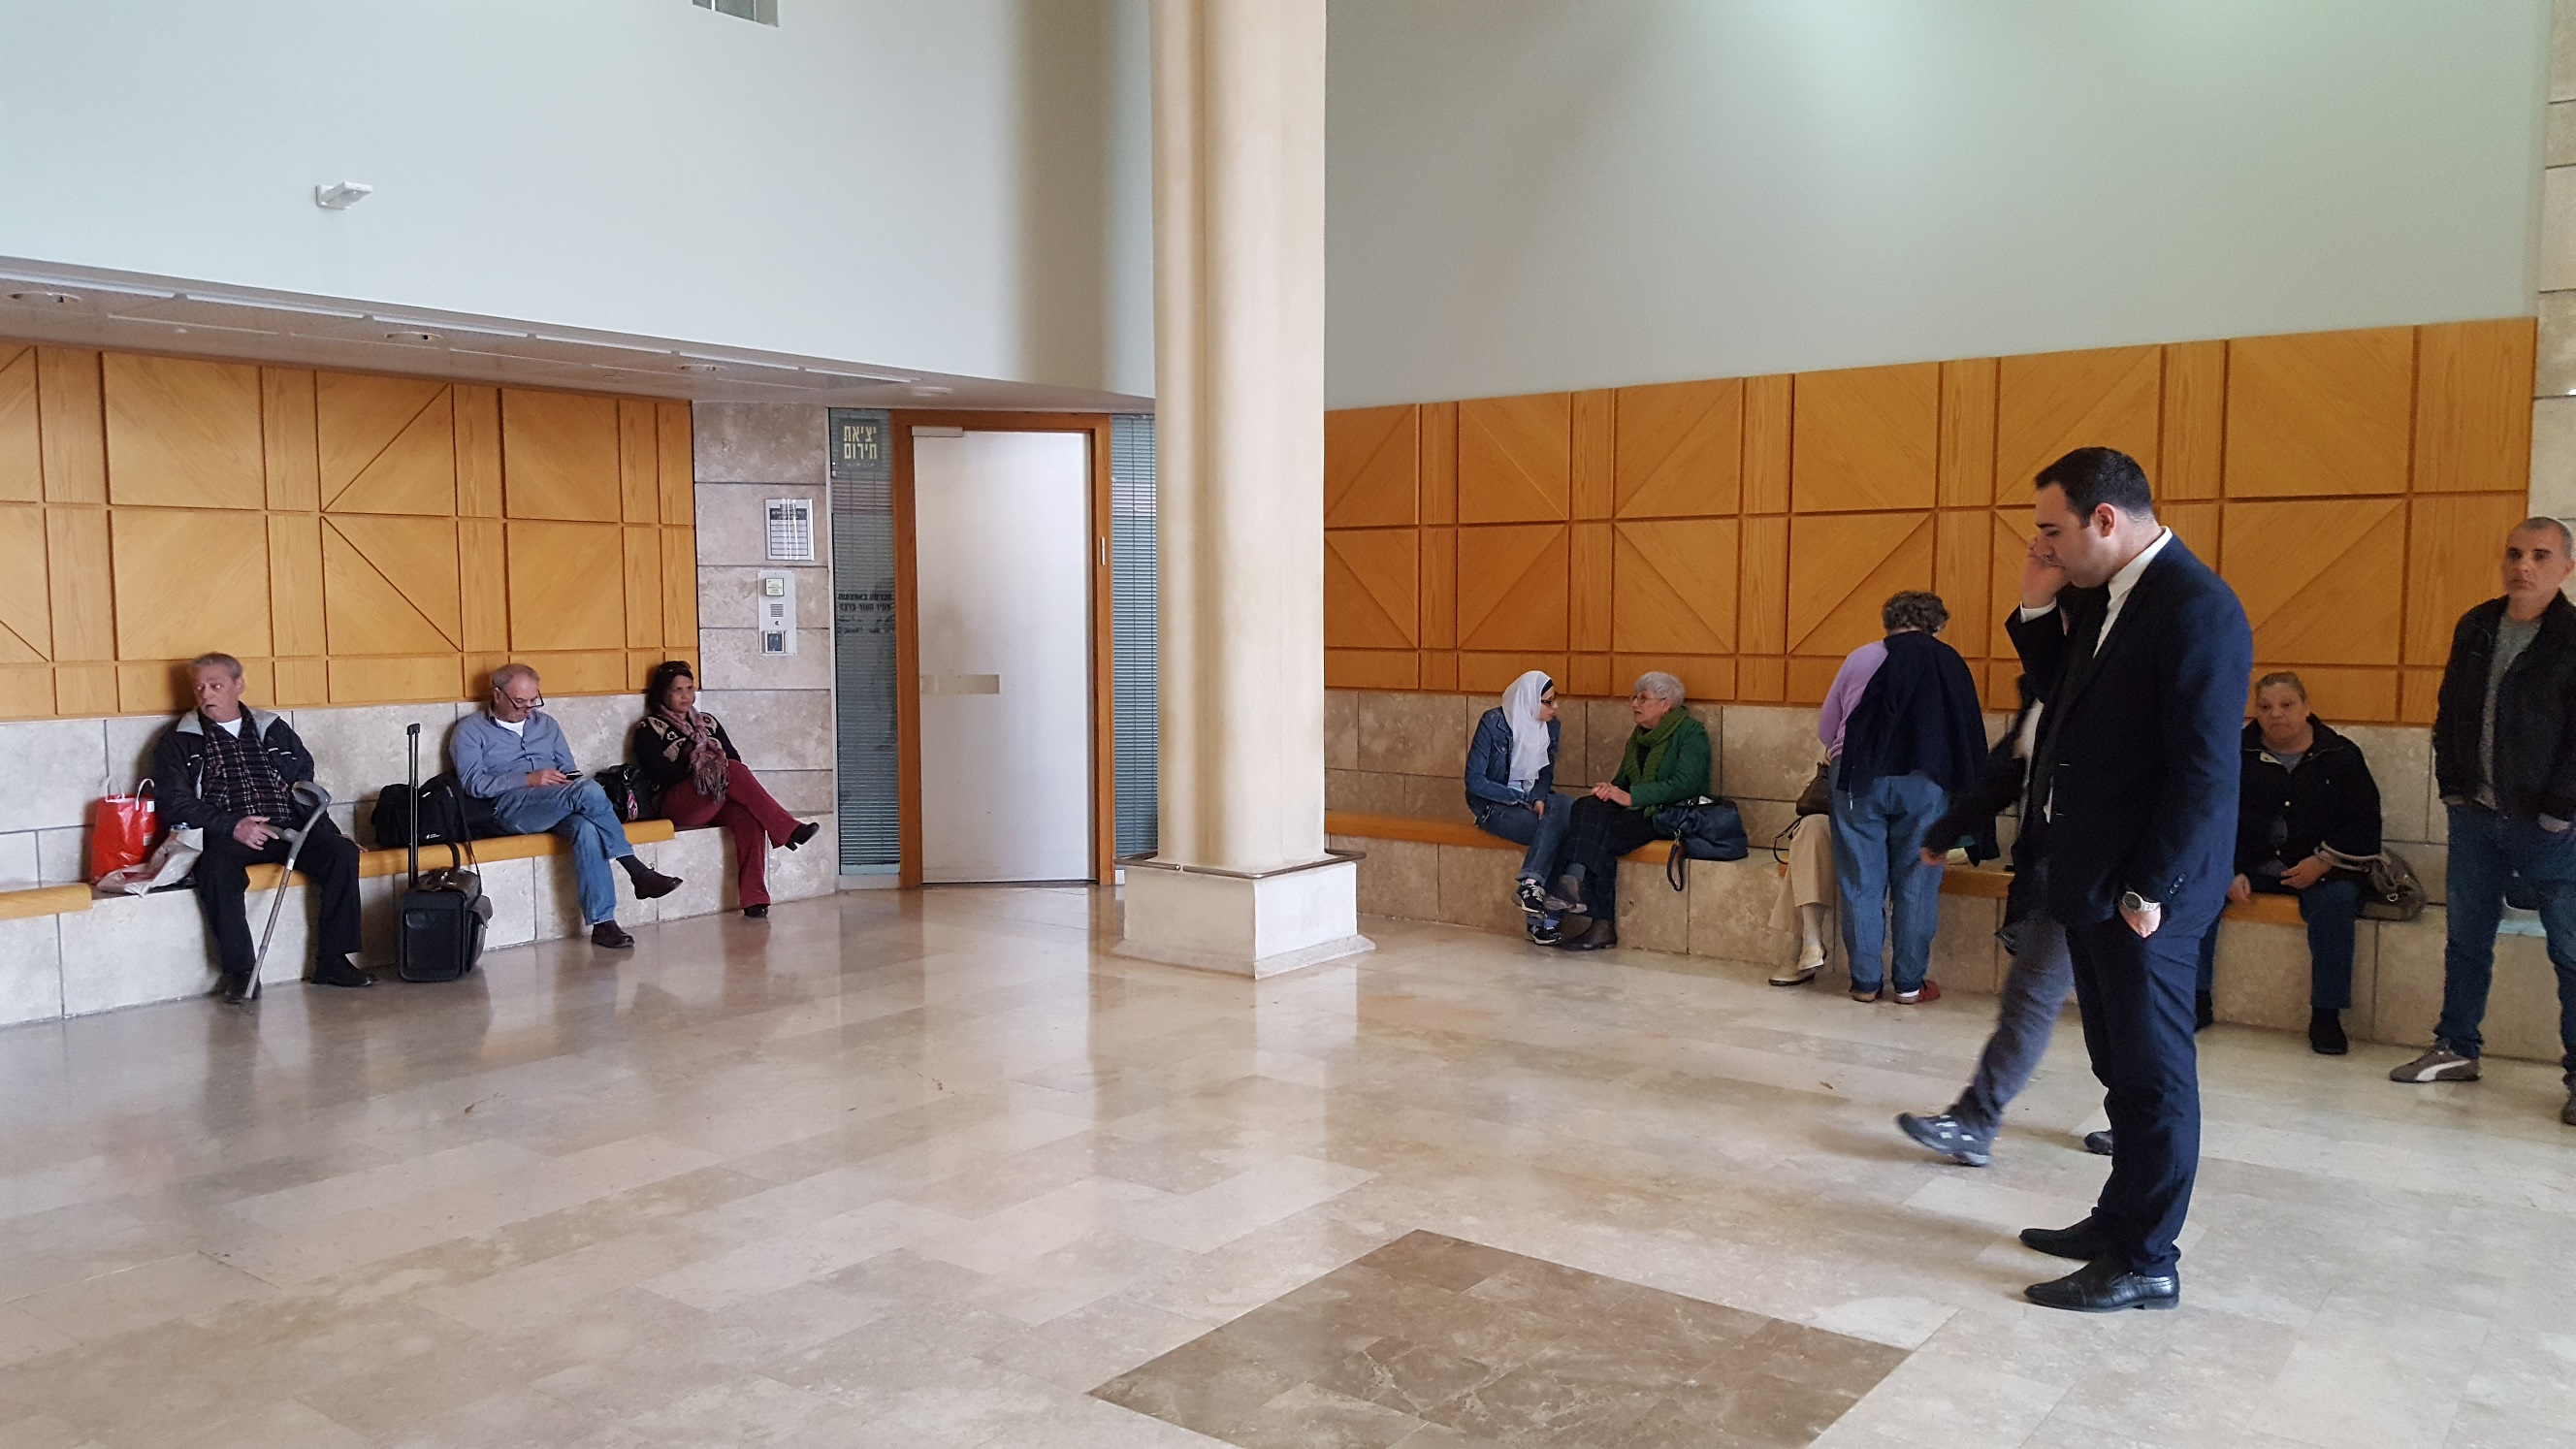 Dareen and friends waiting for trial smaller